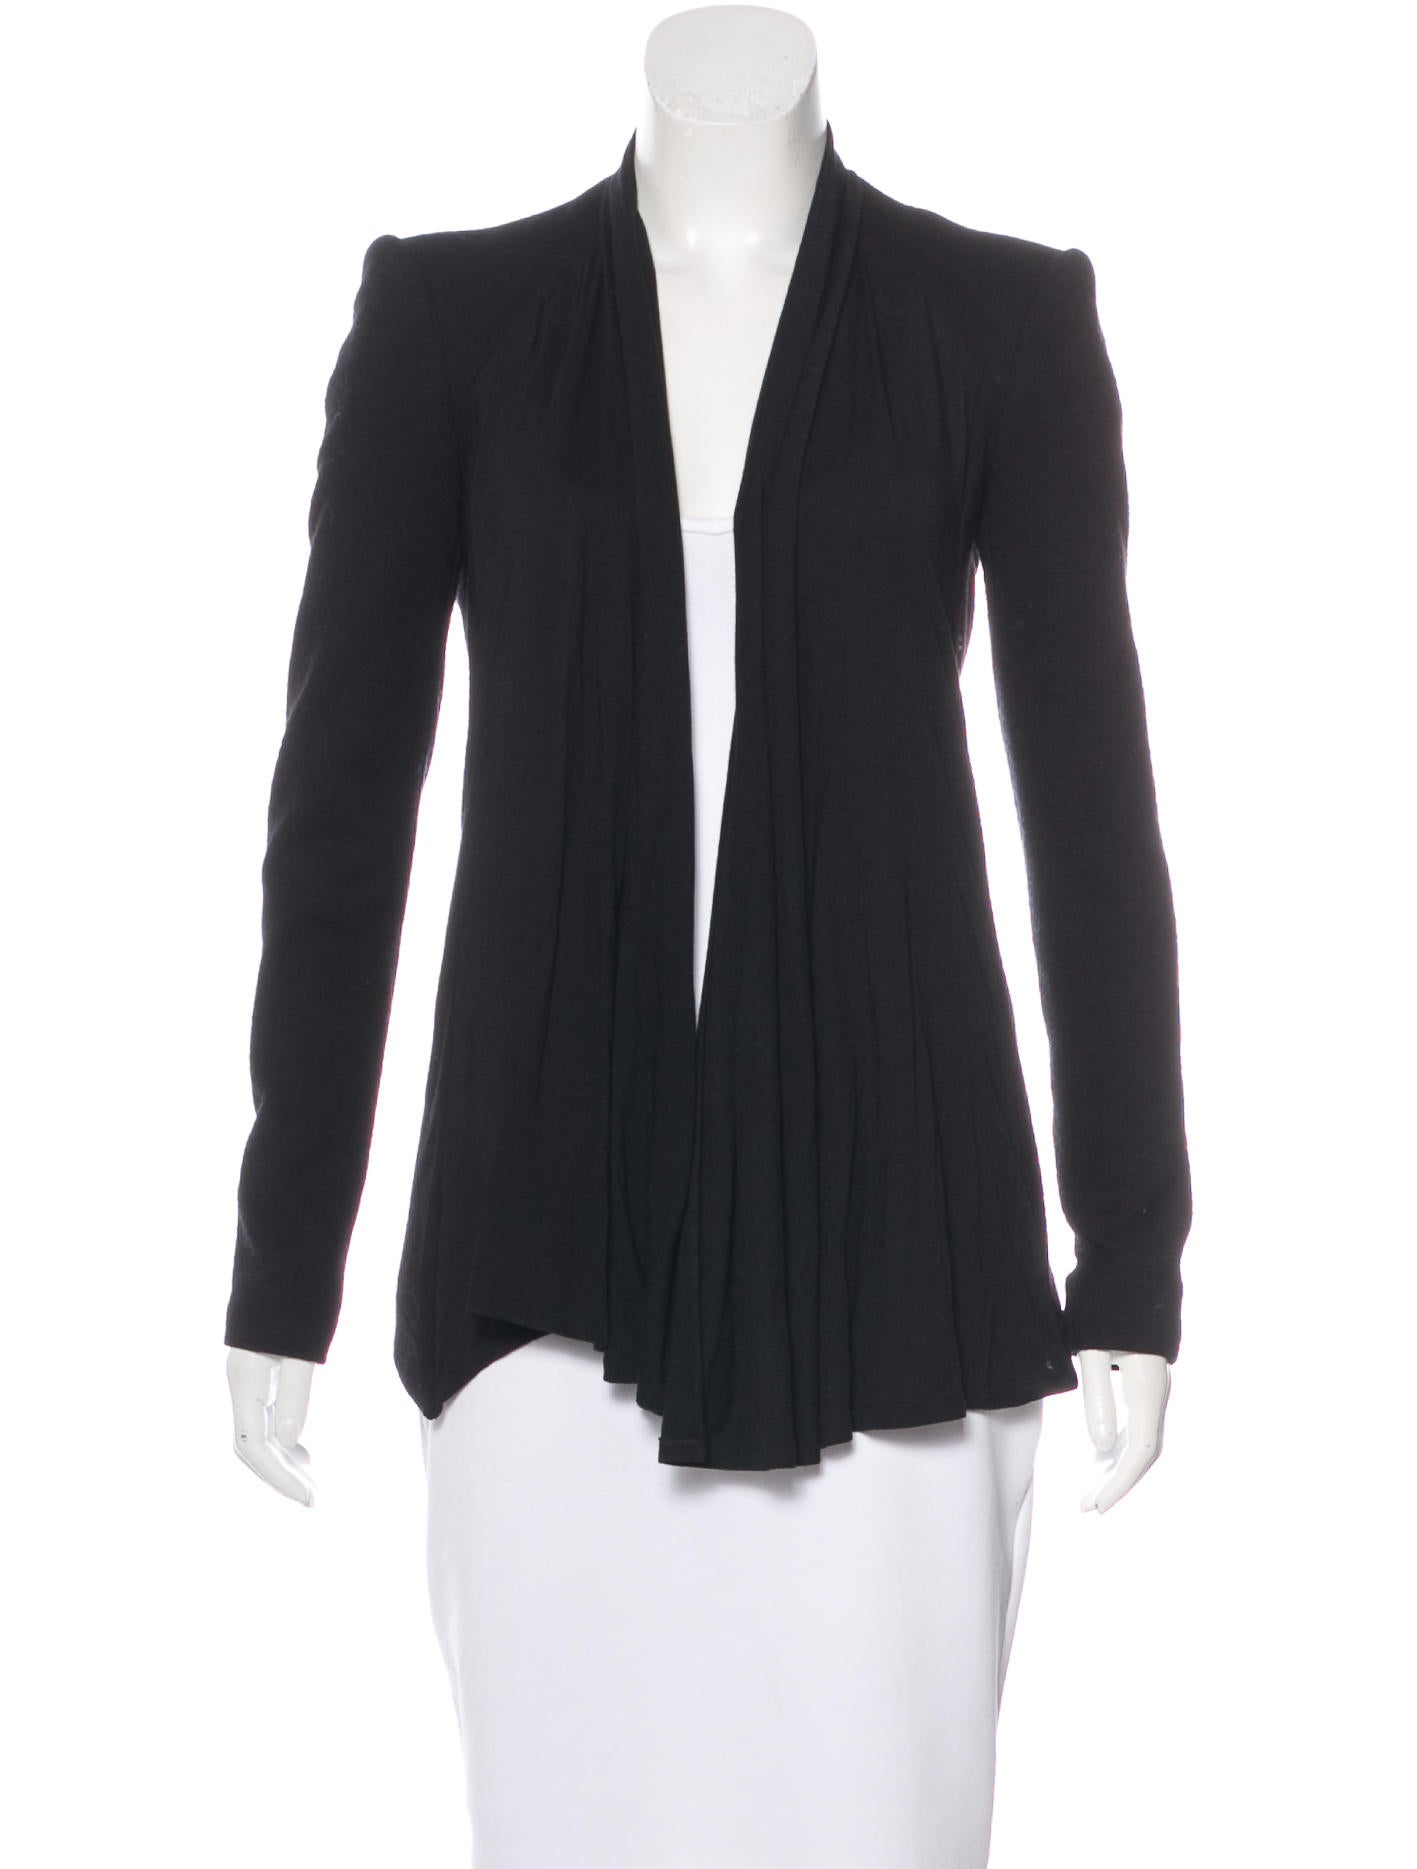 Find drape blazer at ShopStyle. Shop the latest collection of drape blazer from the most popular stores - all in one place.